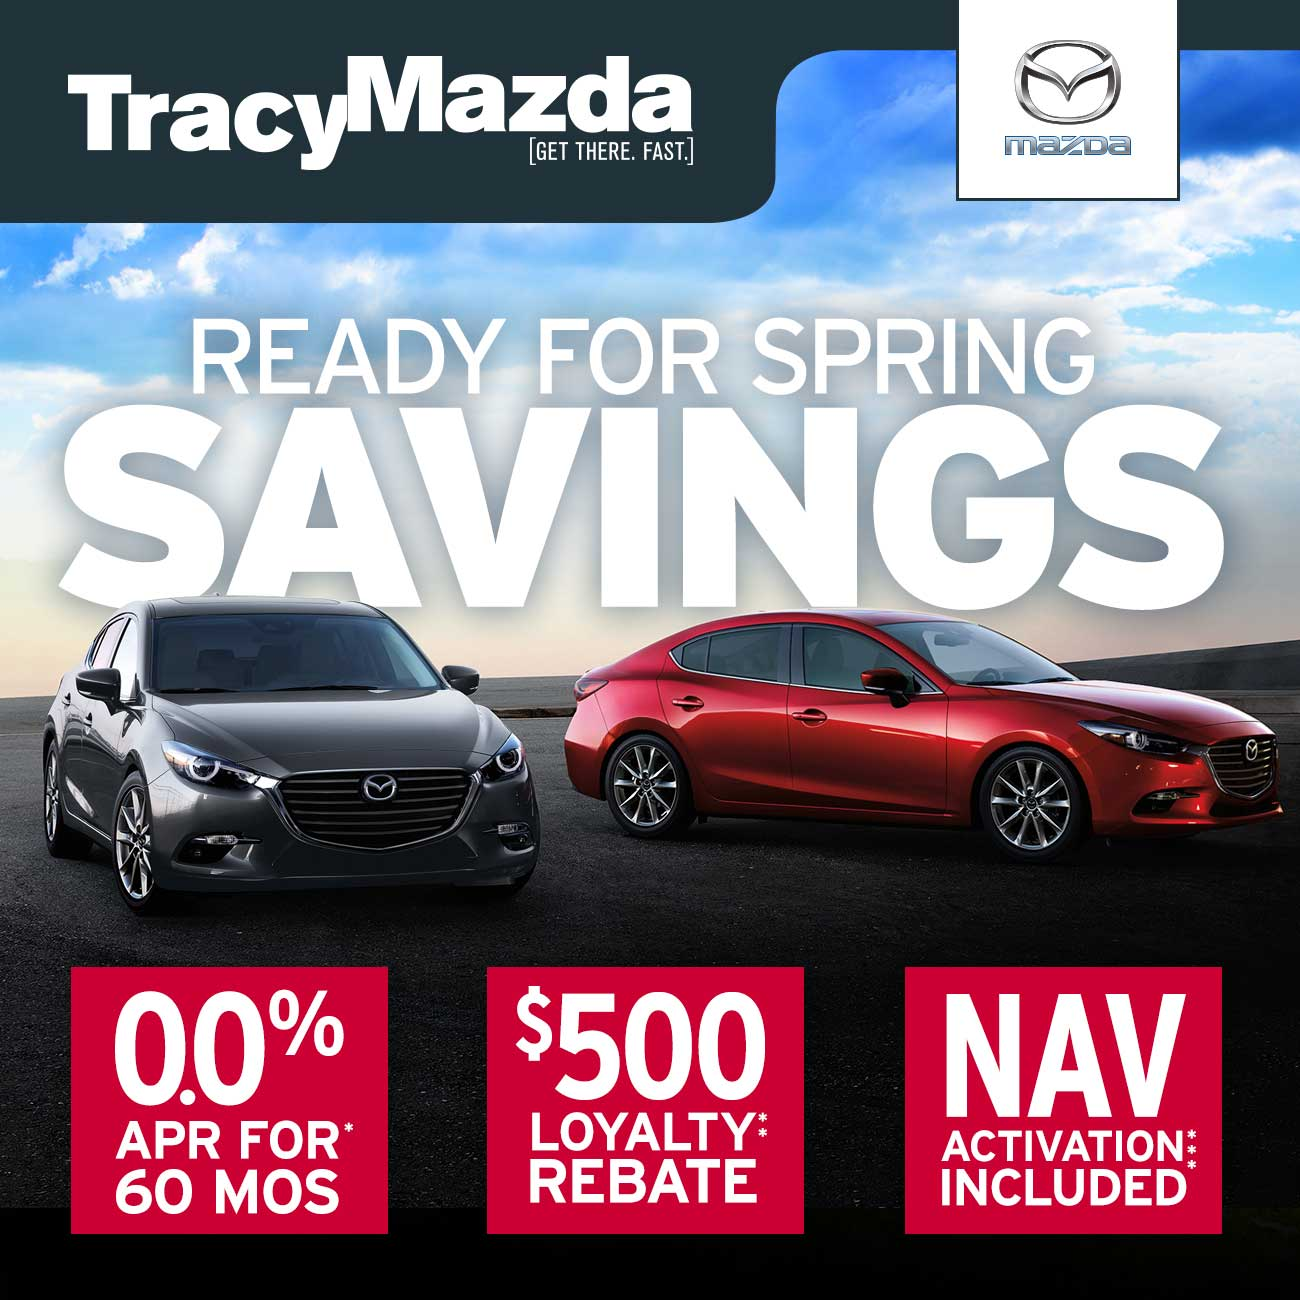 Ready for Spring Savings! 0% APR for 60 Months* | $500 Loyalty Rebate** | Navigation Activation Included***